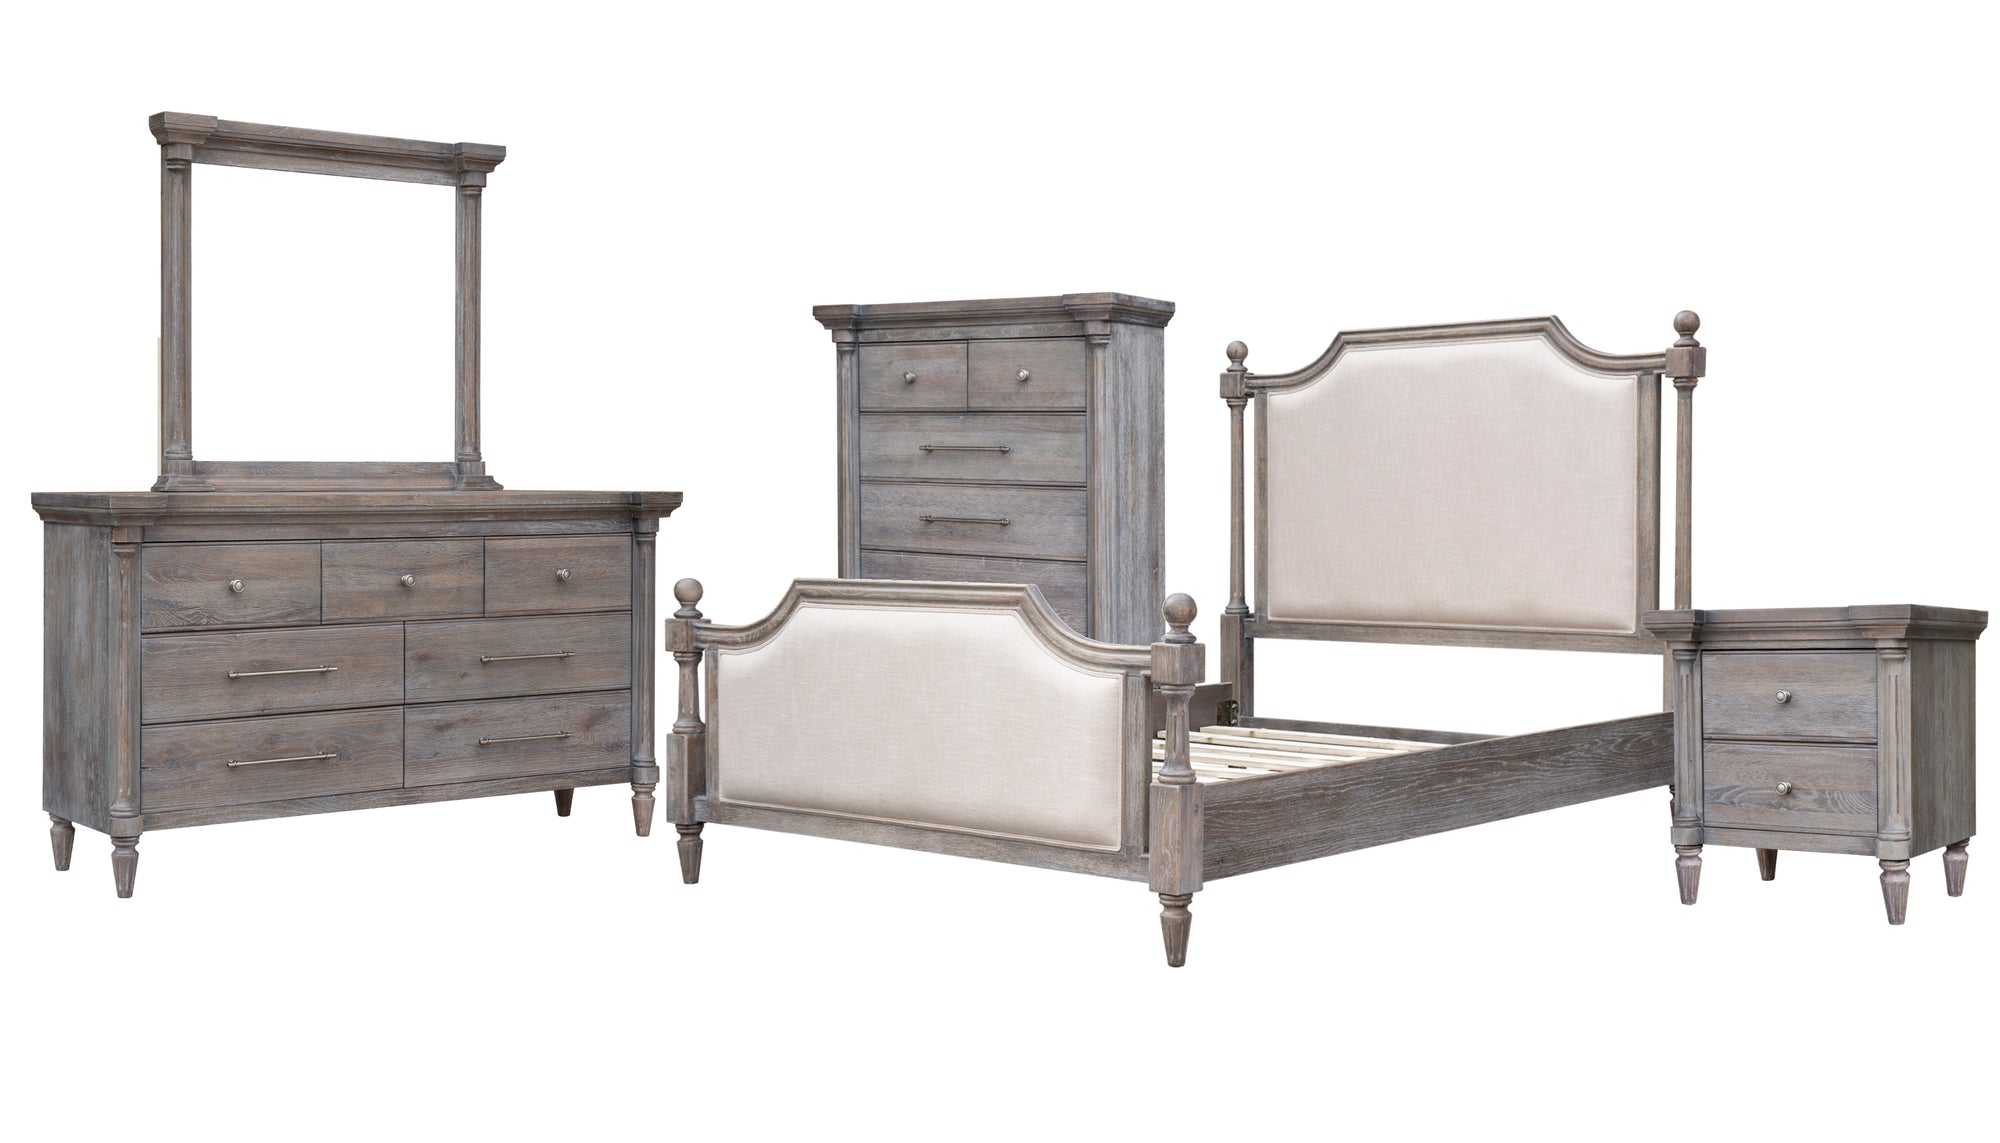 Sunset Trading Fawn Gray 5 Piece Queen Bedroom Set by Sunset Trading - HomeKingz.com - Online furniture shop with the best prices & premium customer support!